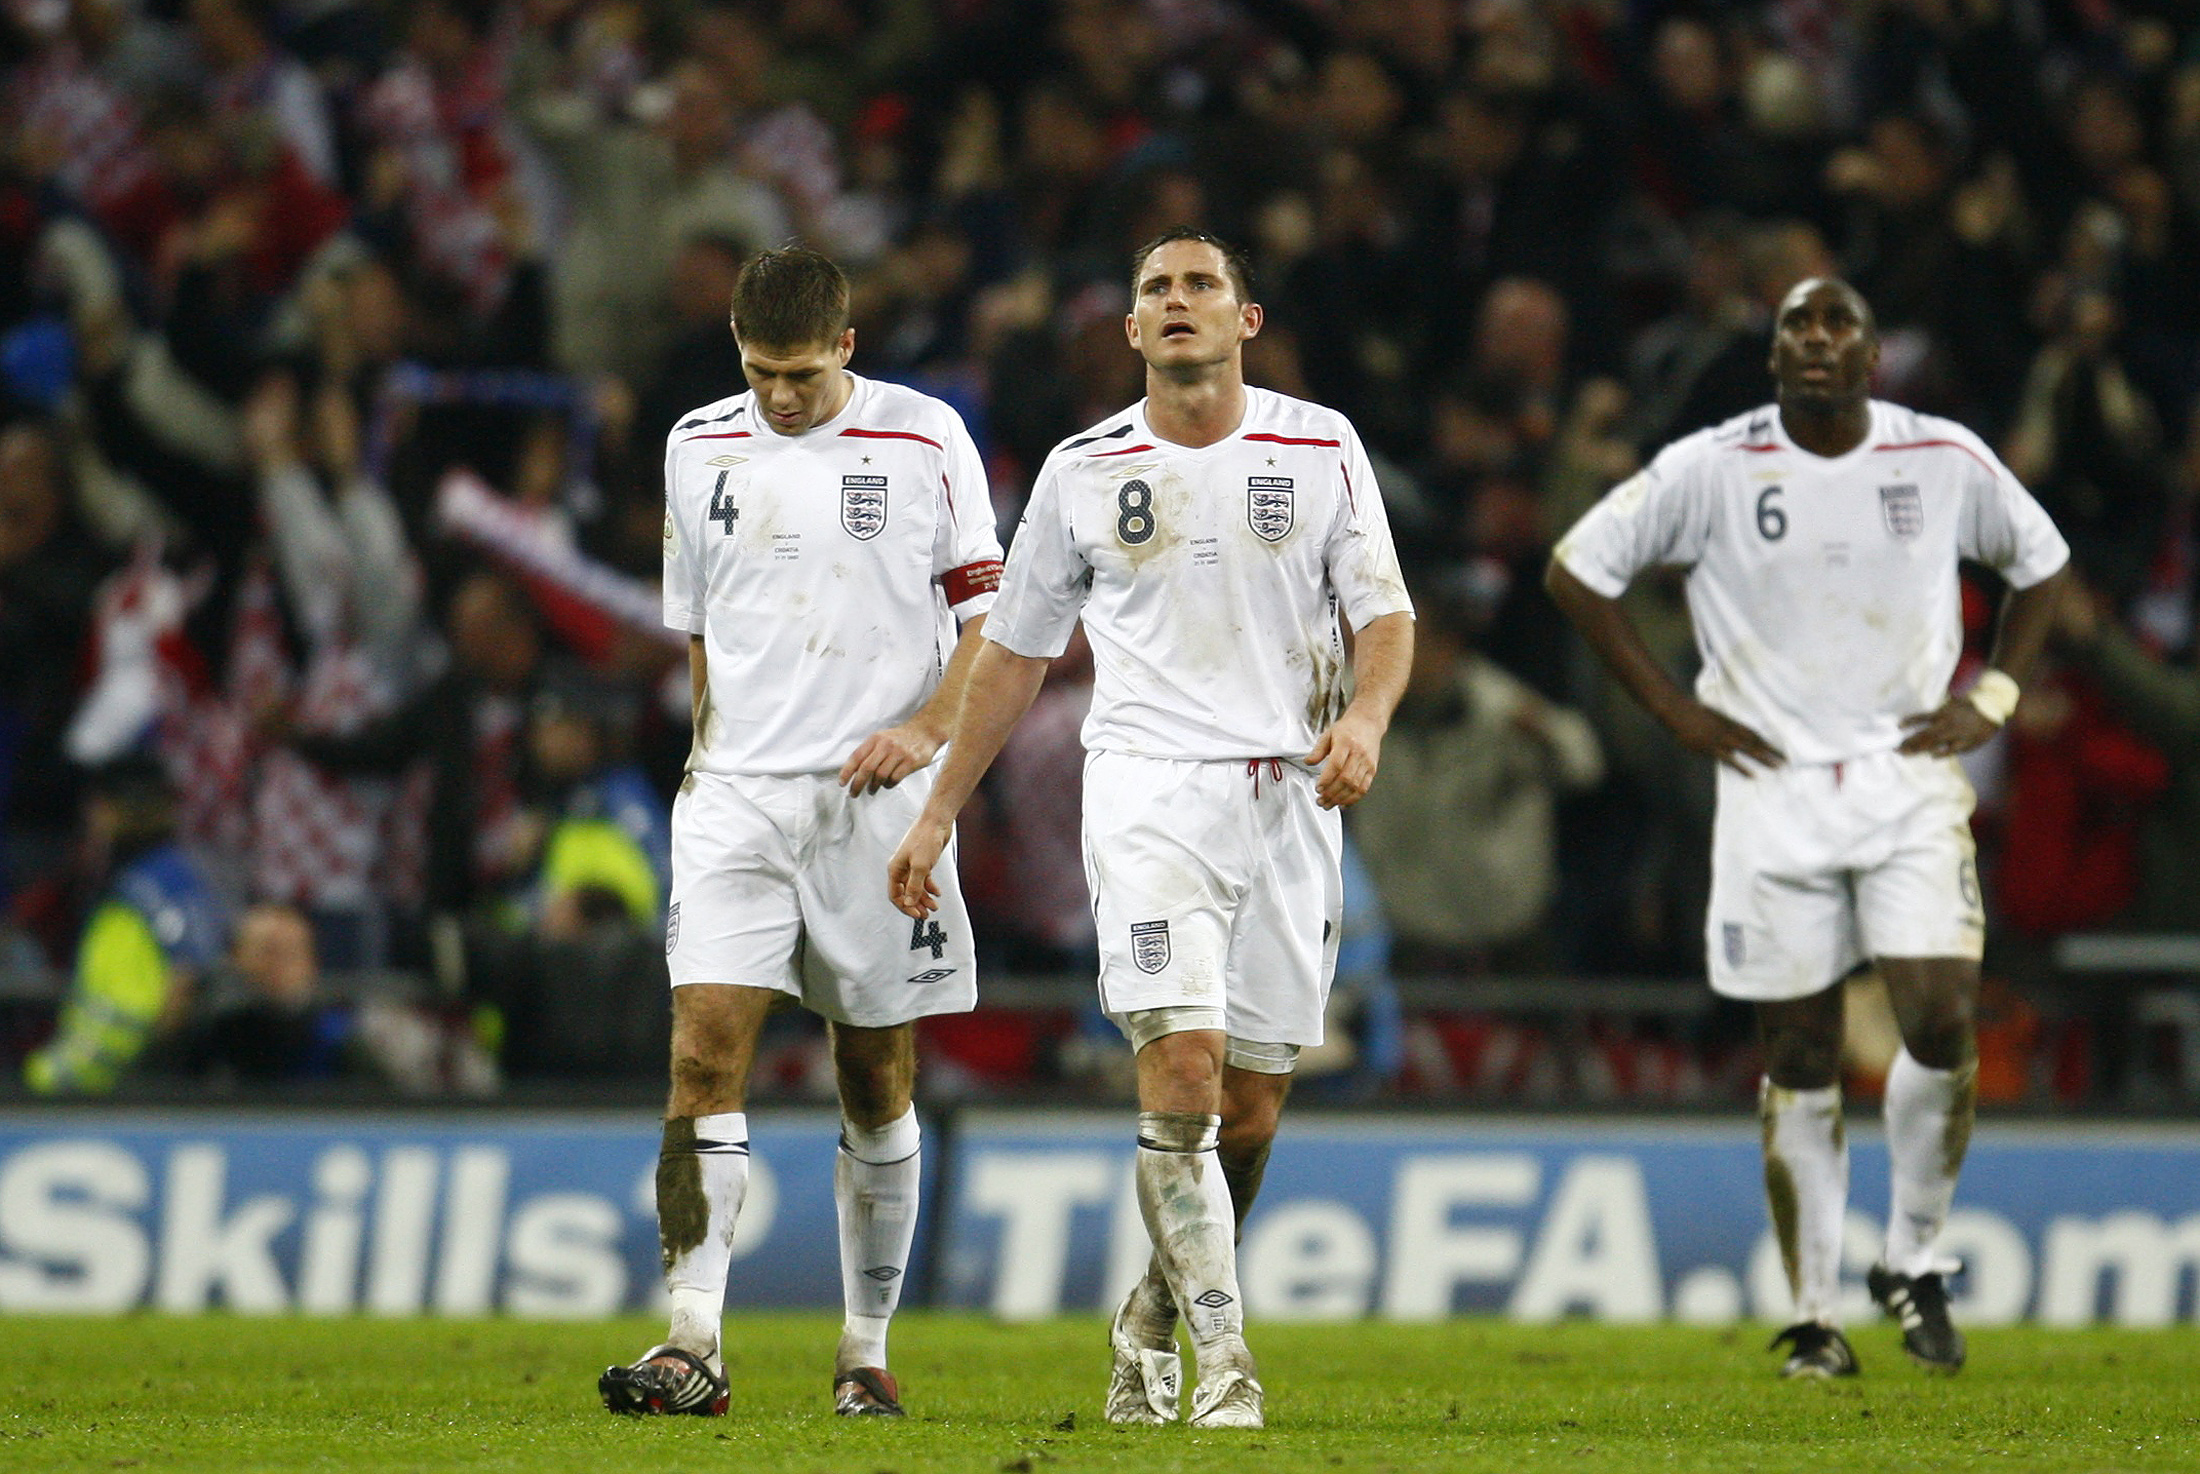 Former England players Steven Gerrard (left), Frank Lampard and Sol Campbell (behind) react after losing to Croatia in 2007 | Picture courtesy: Reuters